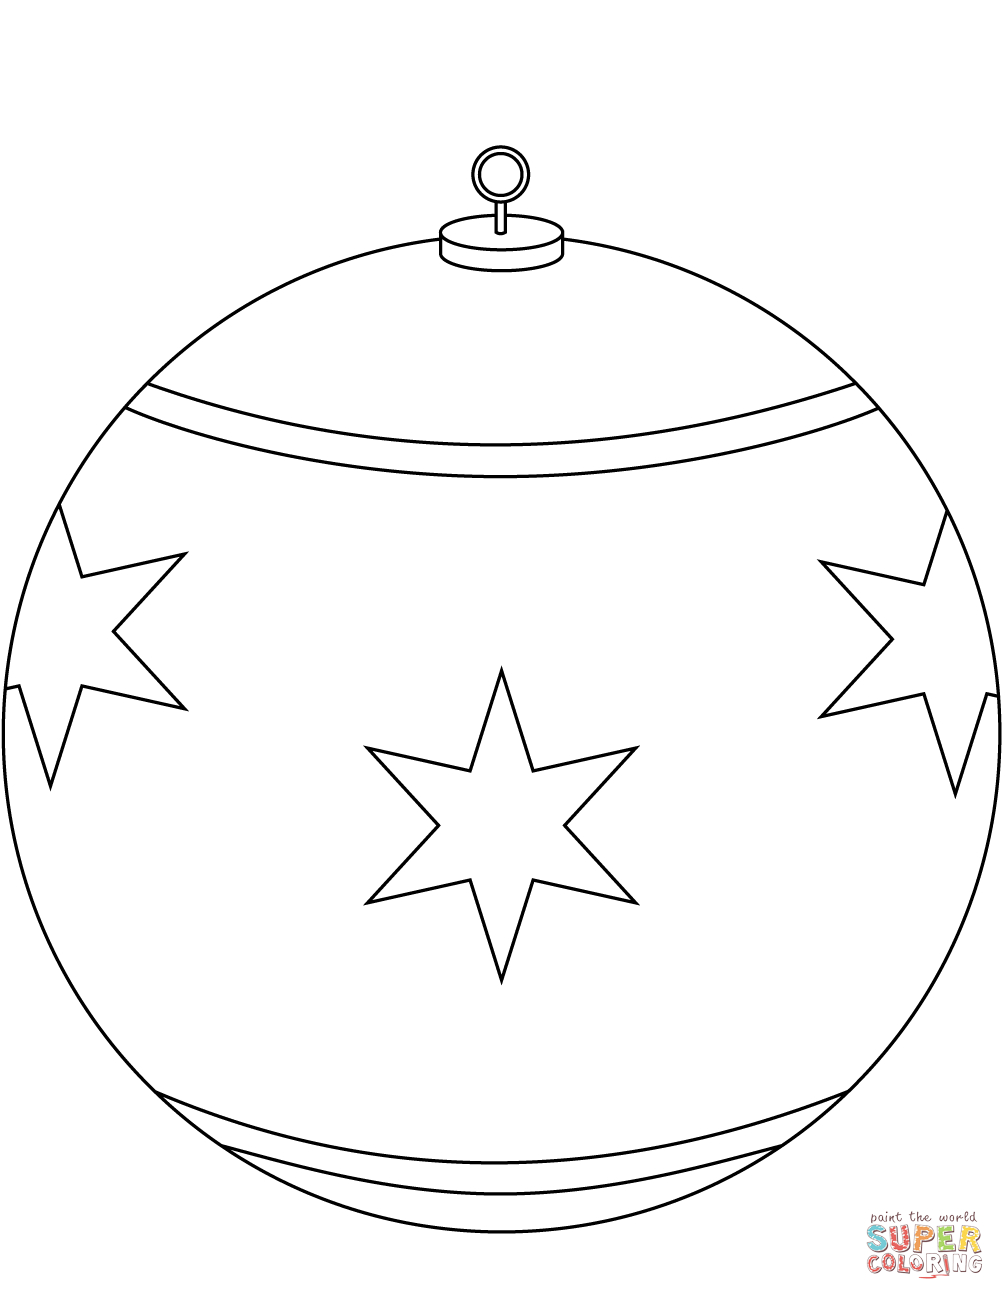 Round Christmas Ornament Coloring Page | Free Printable Coloring Pages - Free Printable Christmas Ornaments